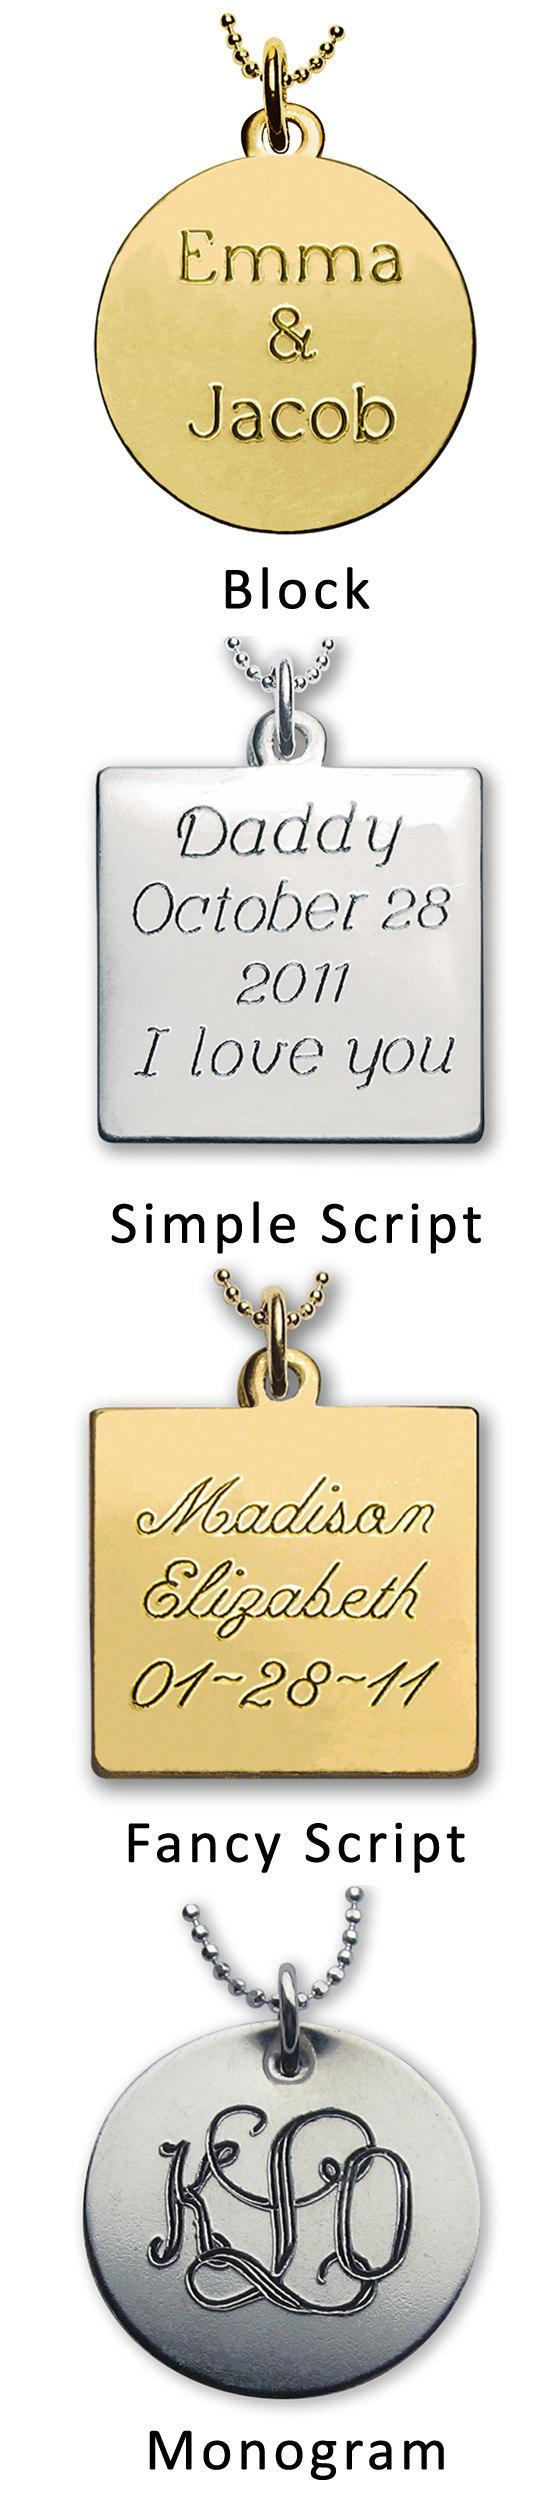 Mariage - Engraving - Add Engraved Message to back of Locket, a Photo Charm or Wedding Bouquet Charm